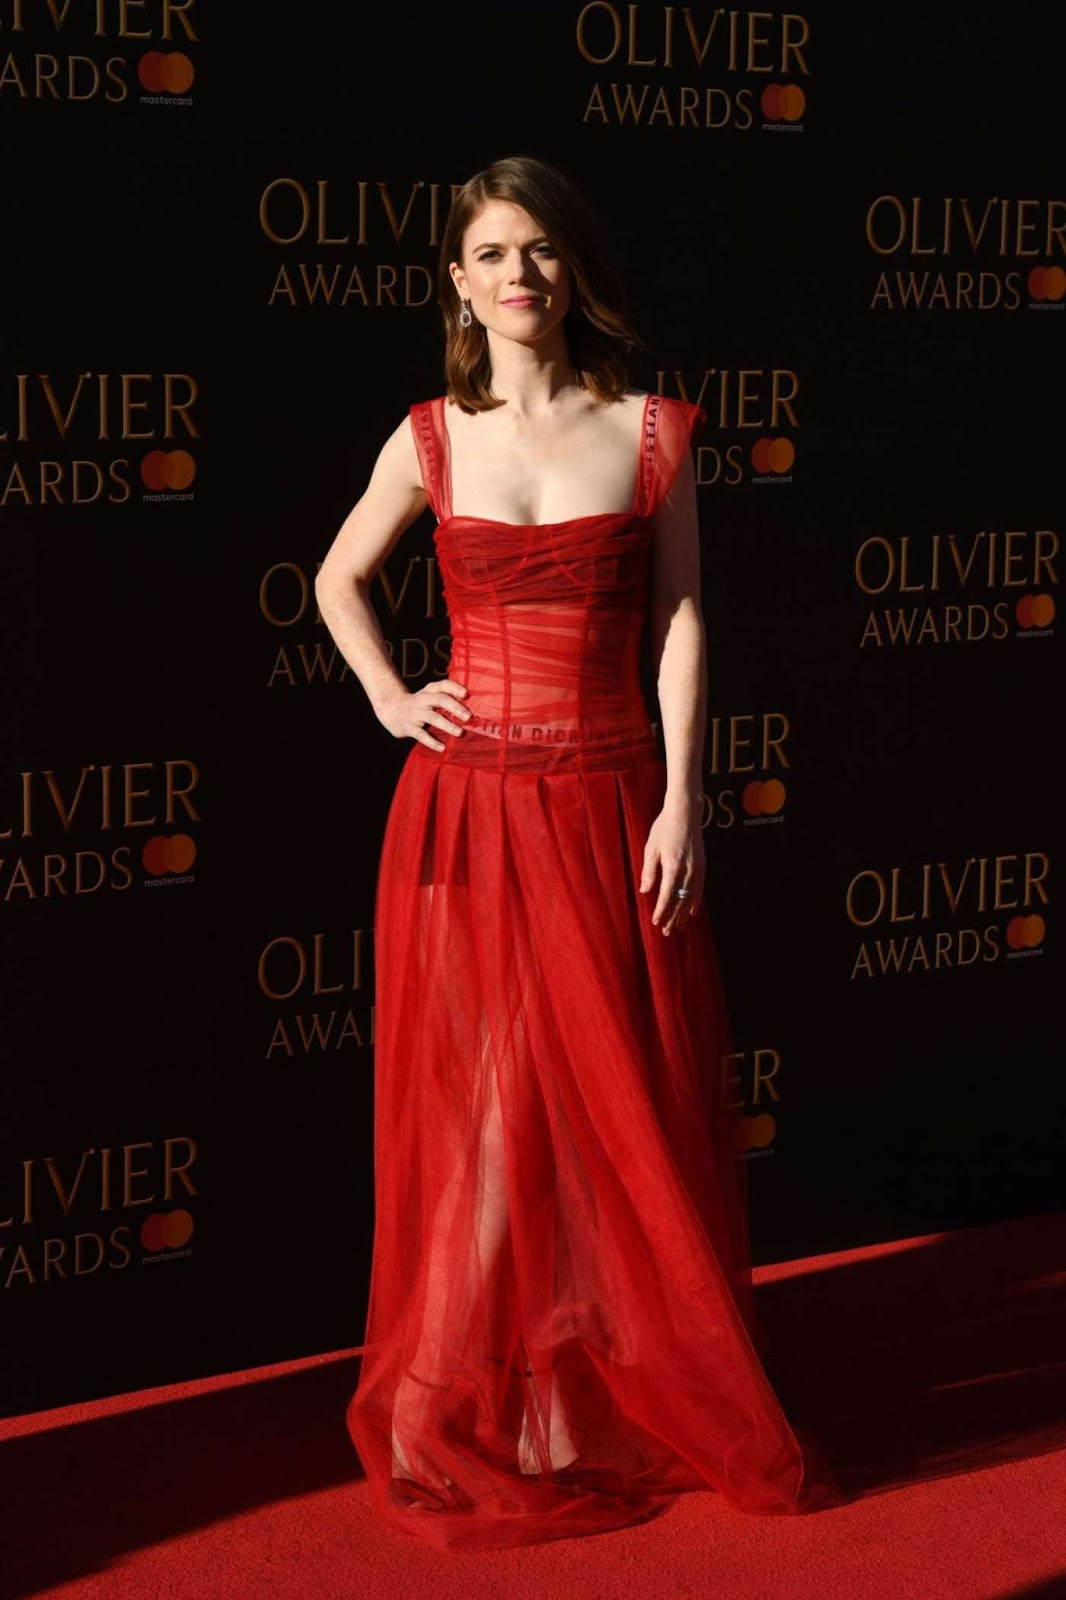 Rose Leslie shows off Dior boxers under sheer gown at the 2017 Olivier Awards in London